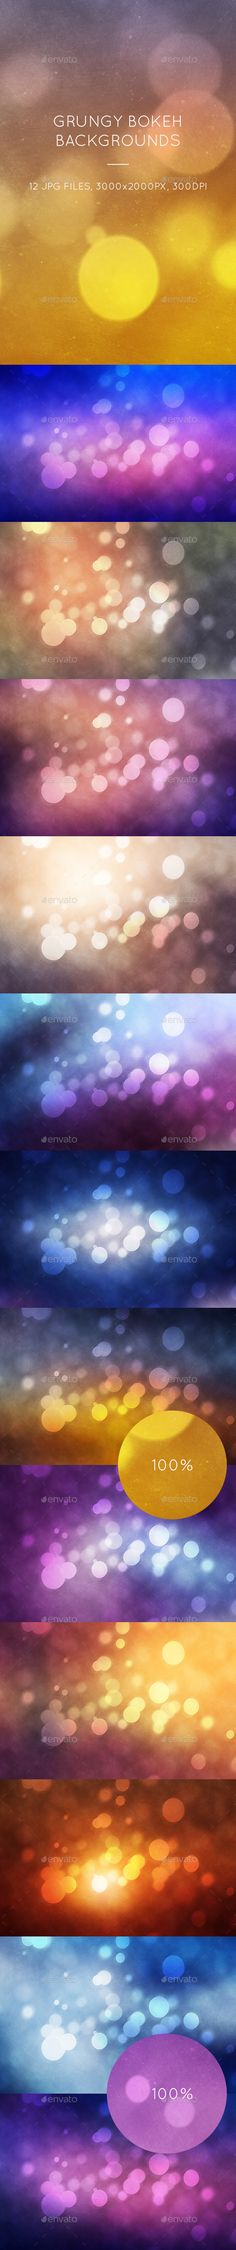 Grungy Bokeh Backgrounds - Abstract #Backgrounds Download here: https://graphicriver.net/item/grungy-bokeh-backgrounds/16616138?ref=alena994